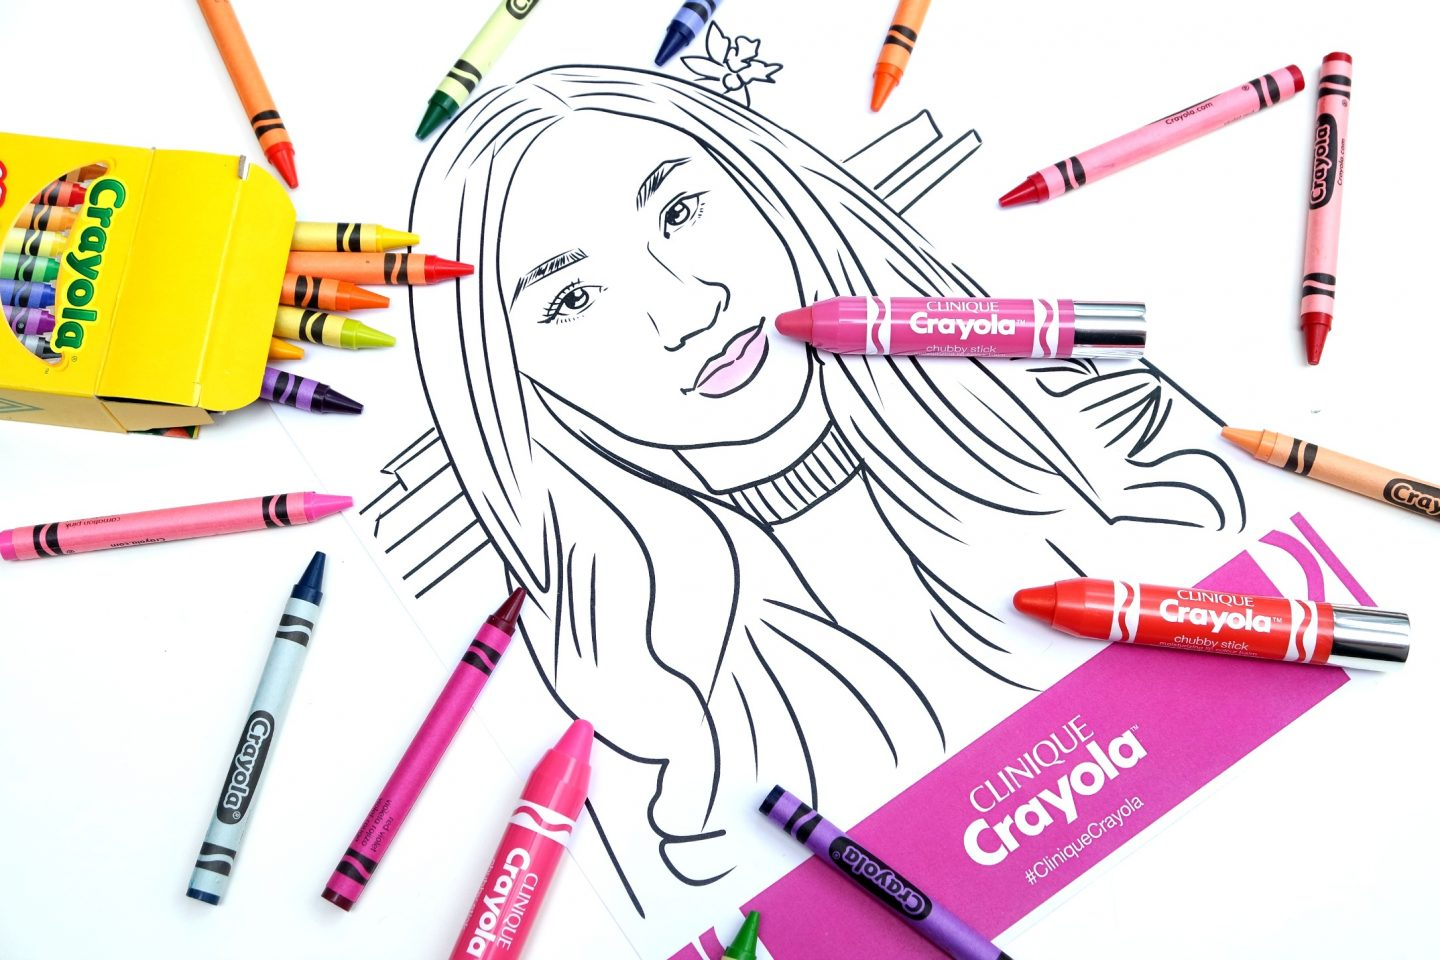 Clinique Crayola Chubby Stick Collection